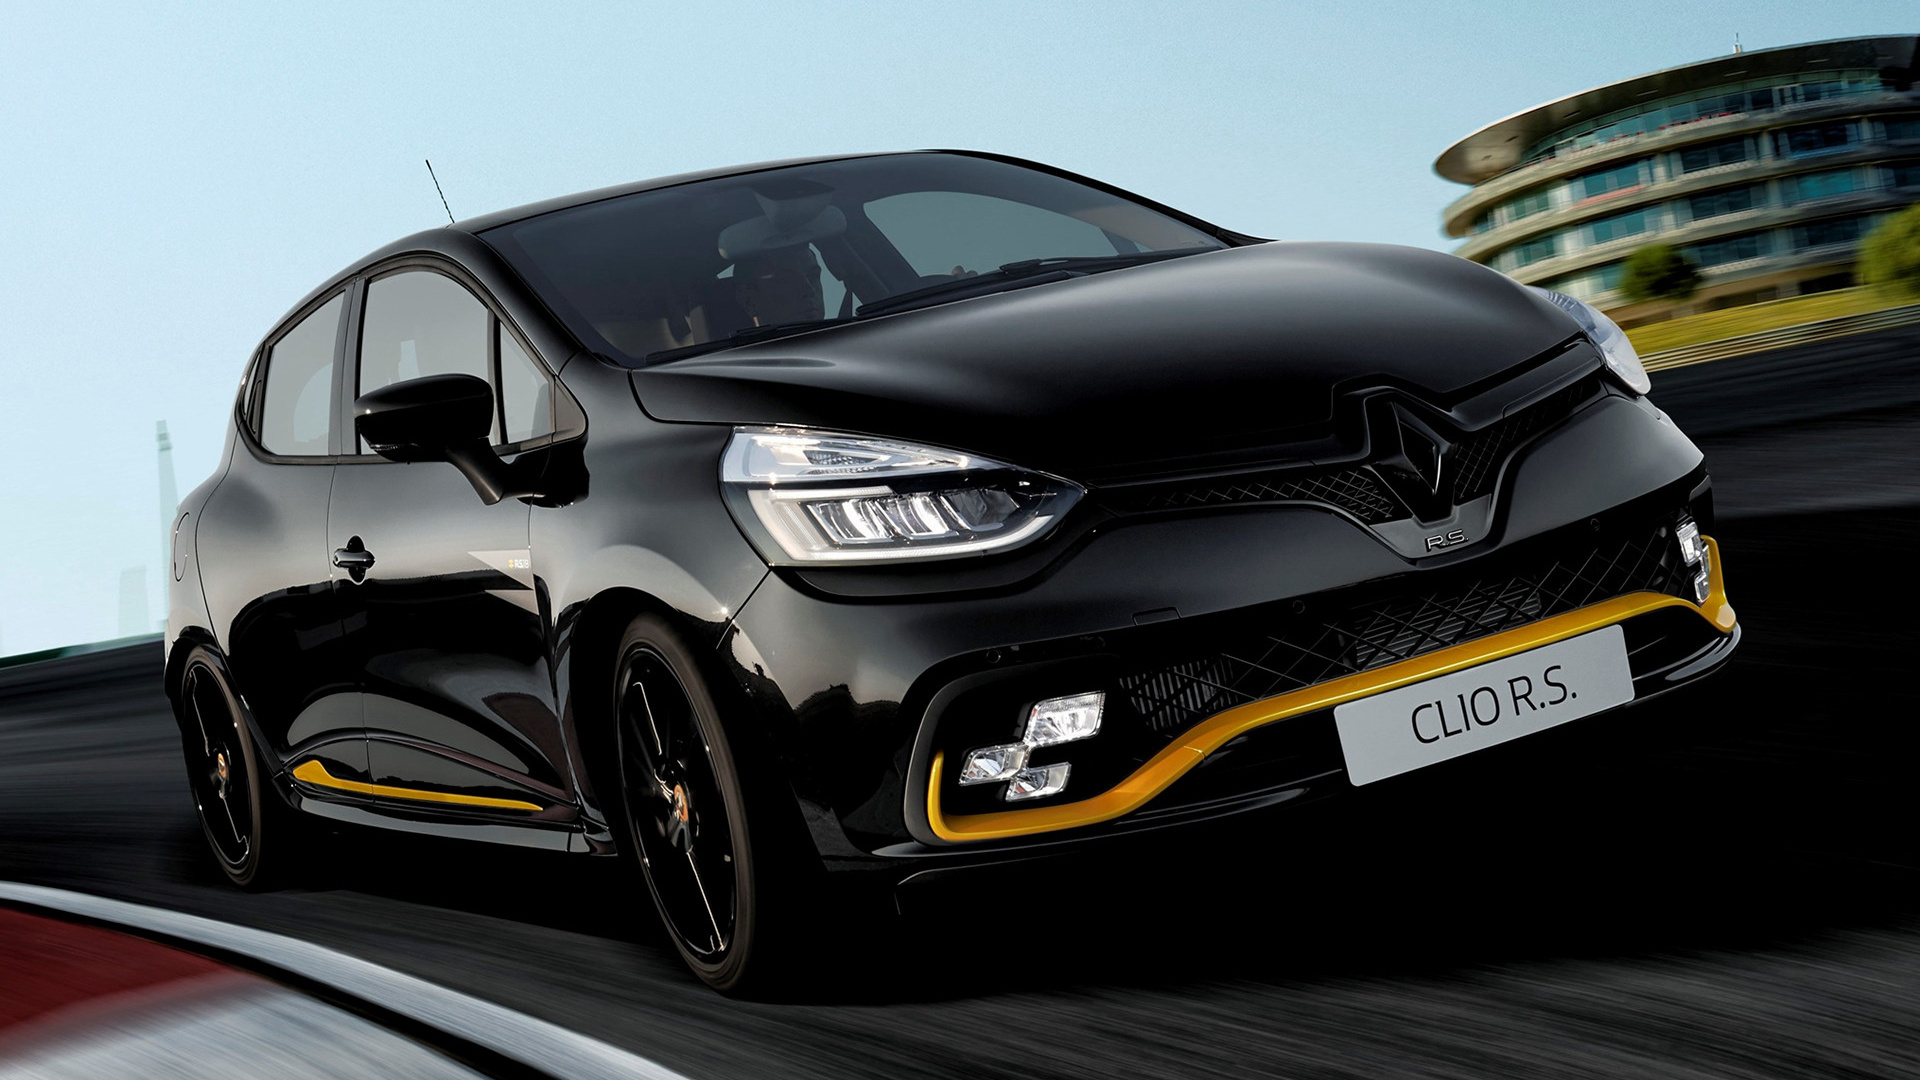 2018 renault clio rs 18 wallpapers and hd images car pixel. Black Bedroom Furniture Sets. Home Design Ideas